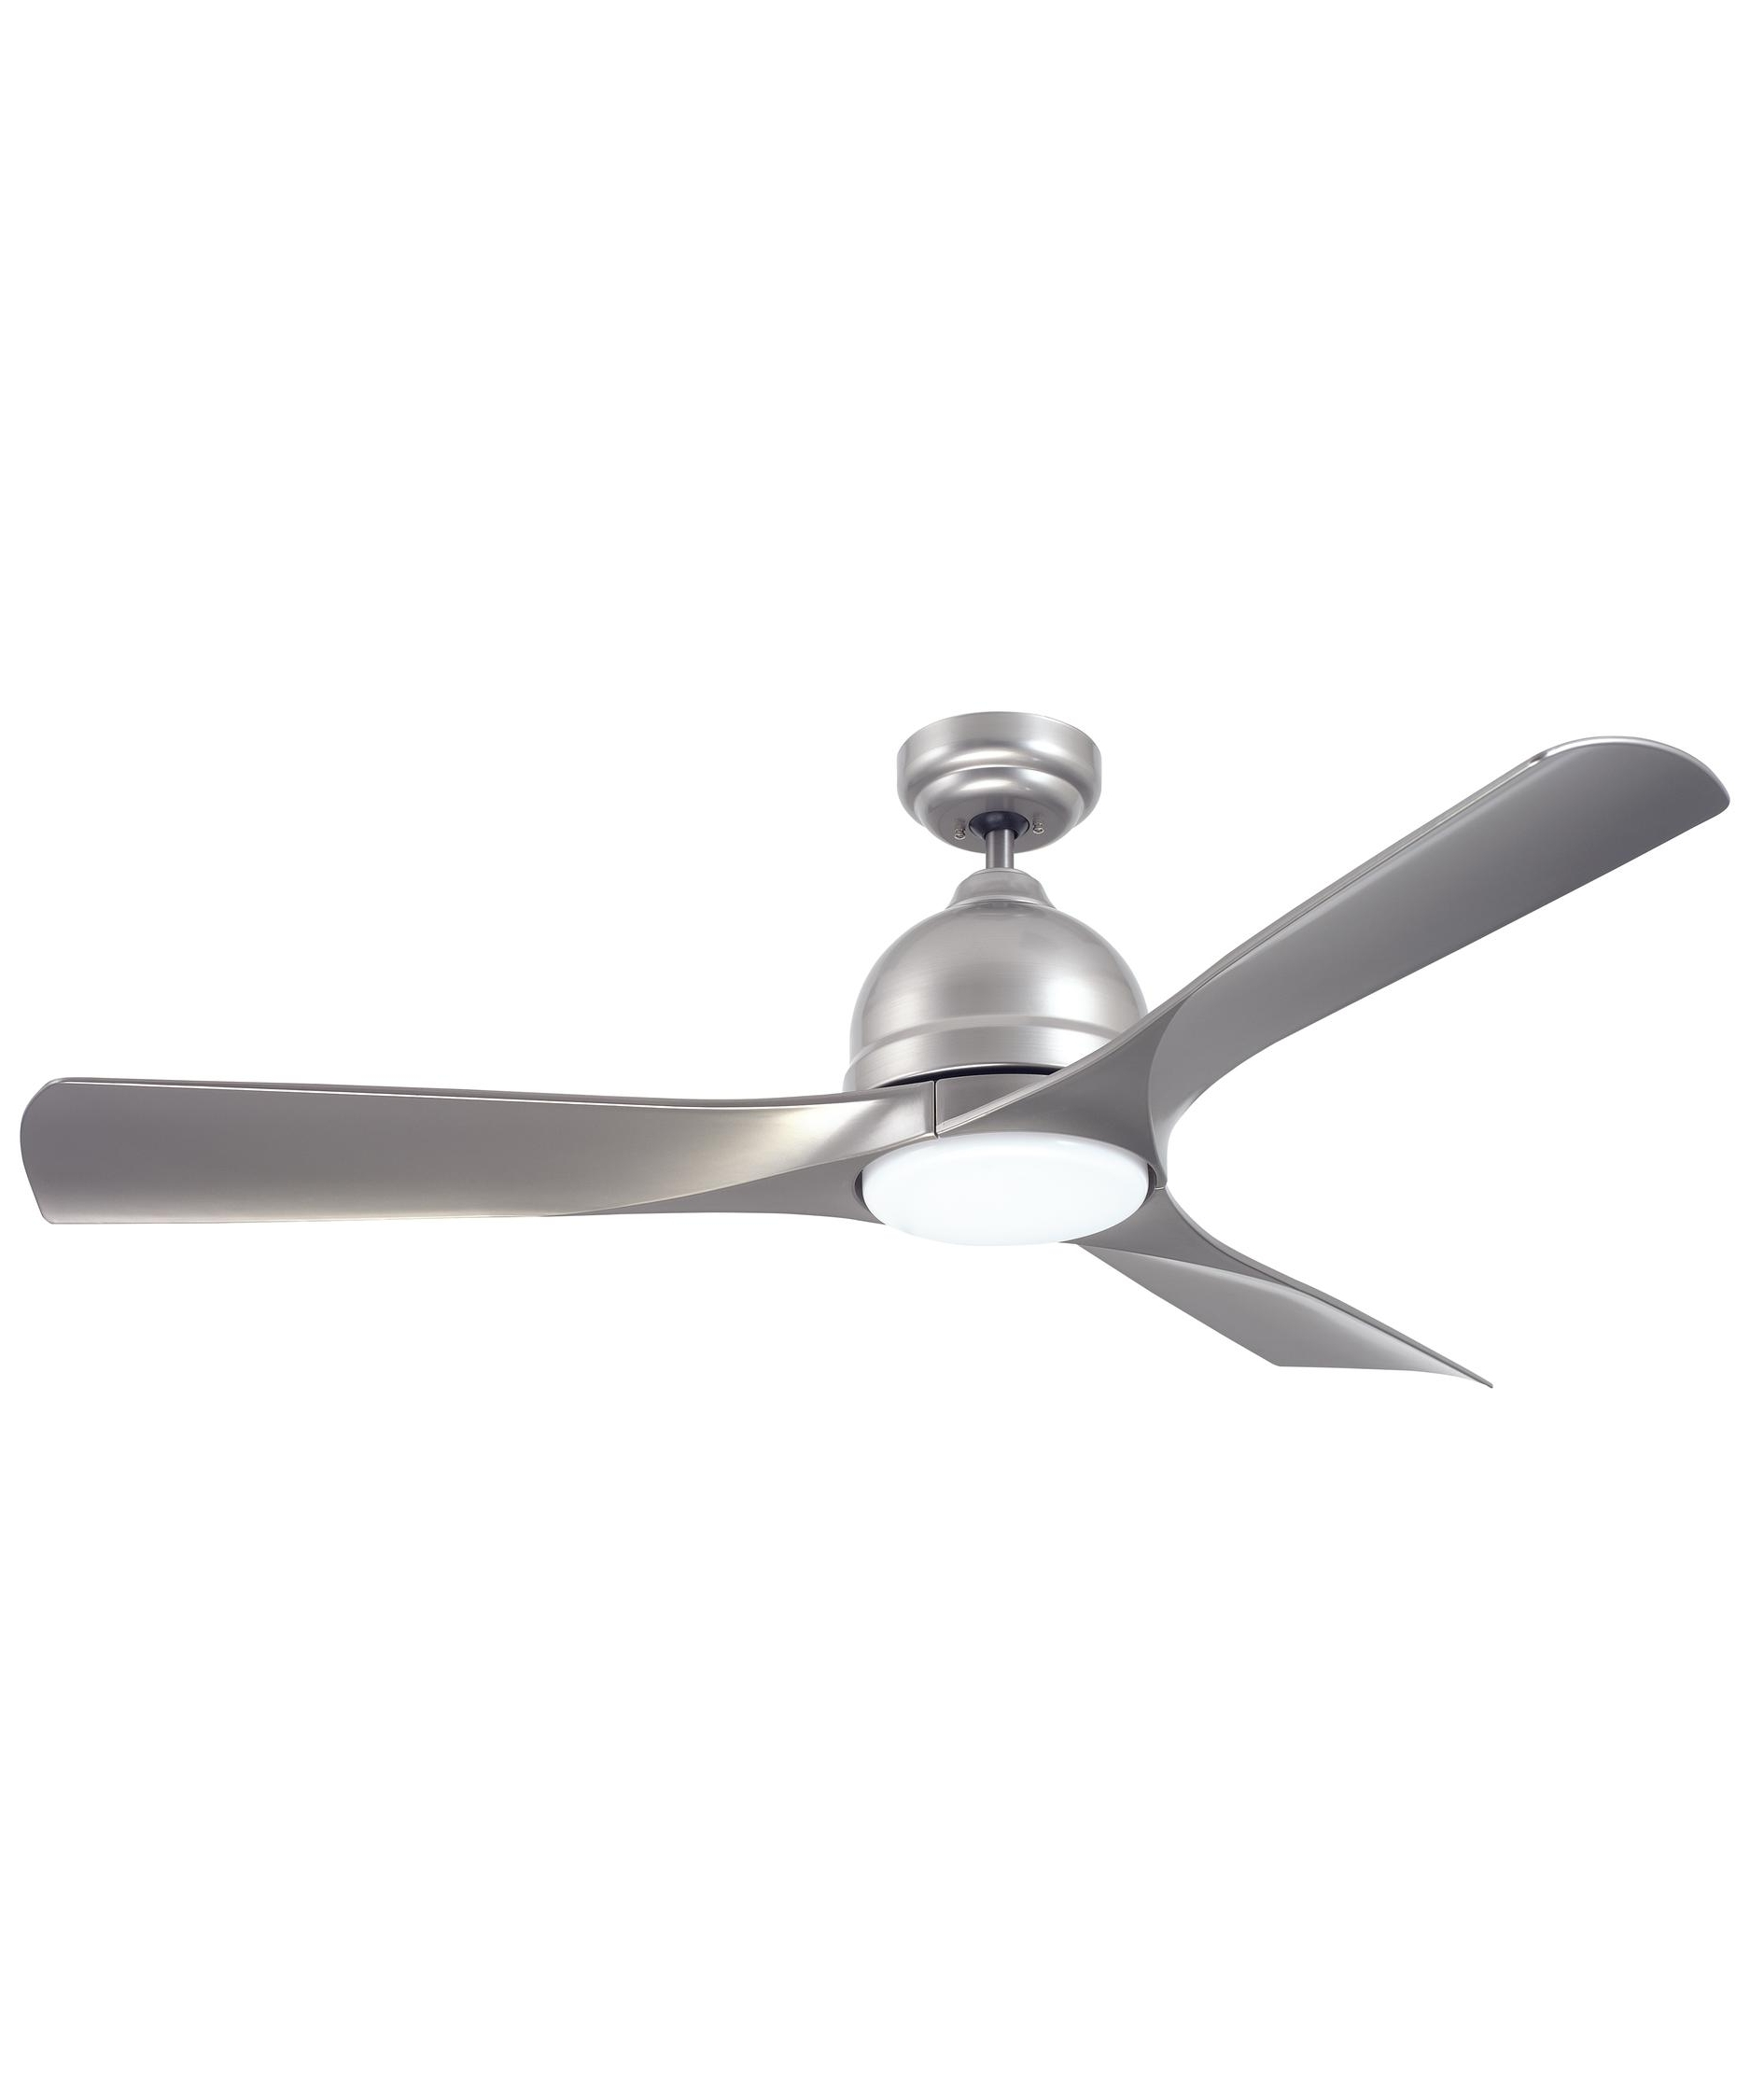 Emerson Cf590 Volta 54 Inch 3 Blade Ceiling Fan (Gallery 3 of 20)